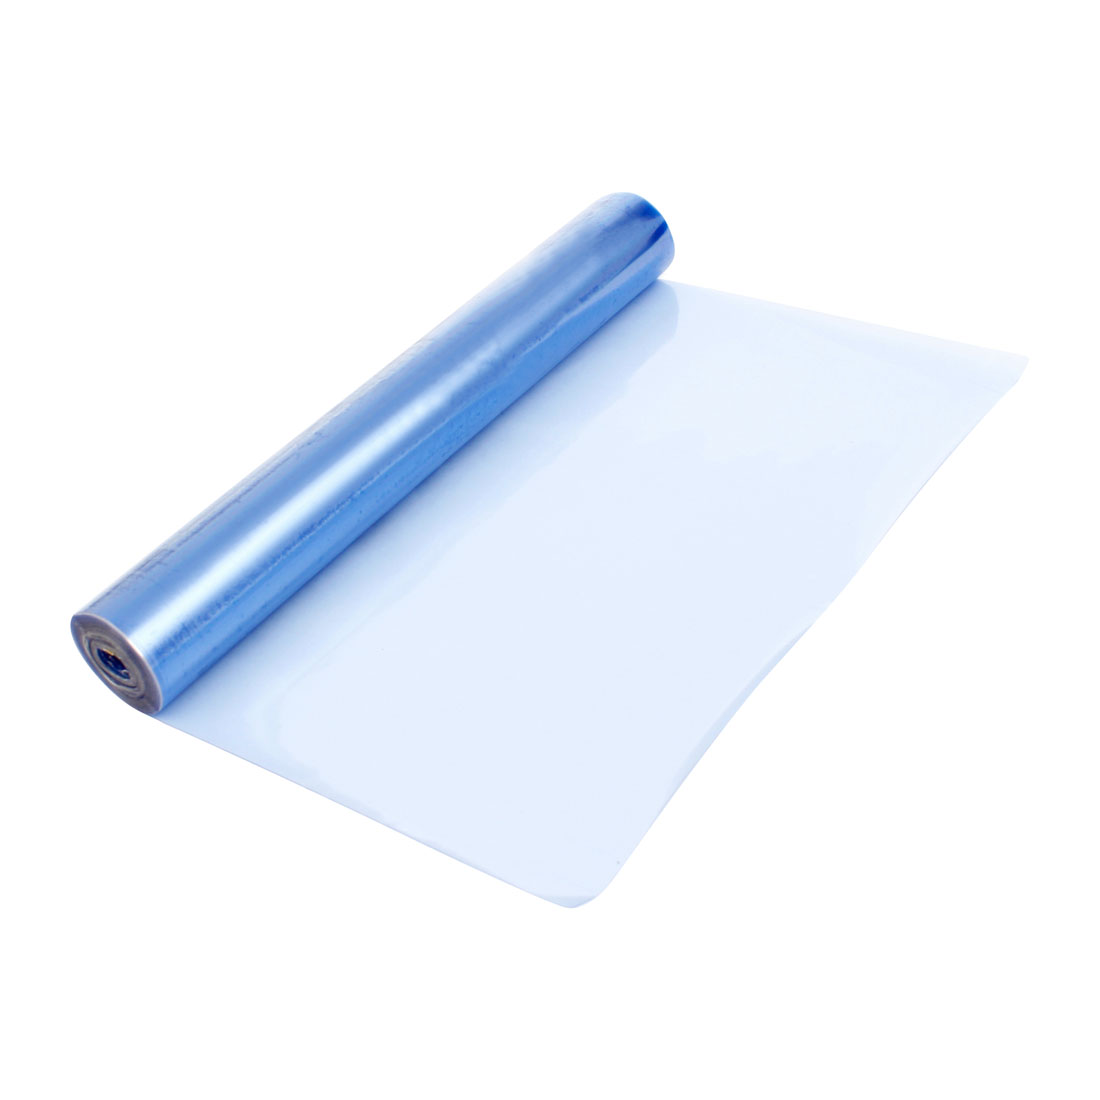 450cm x 30cm Blue Vinly Film Sticker Cover Sheet for Car Lamps Lights